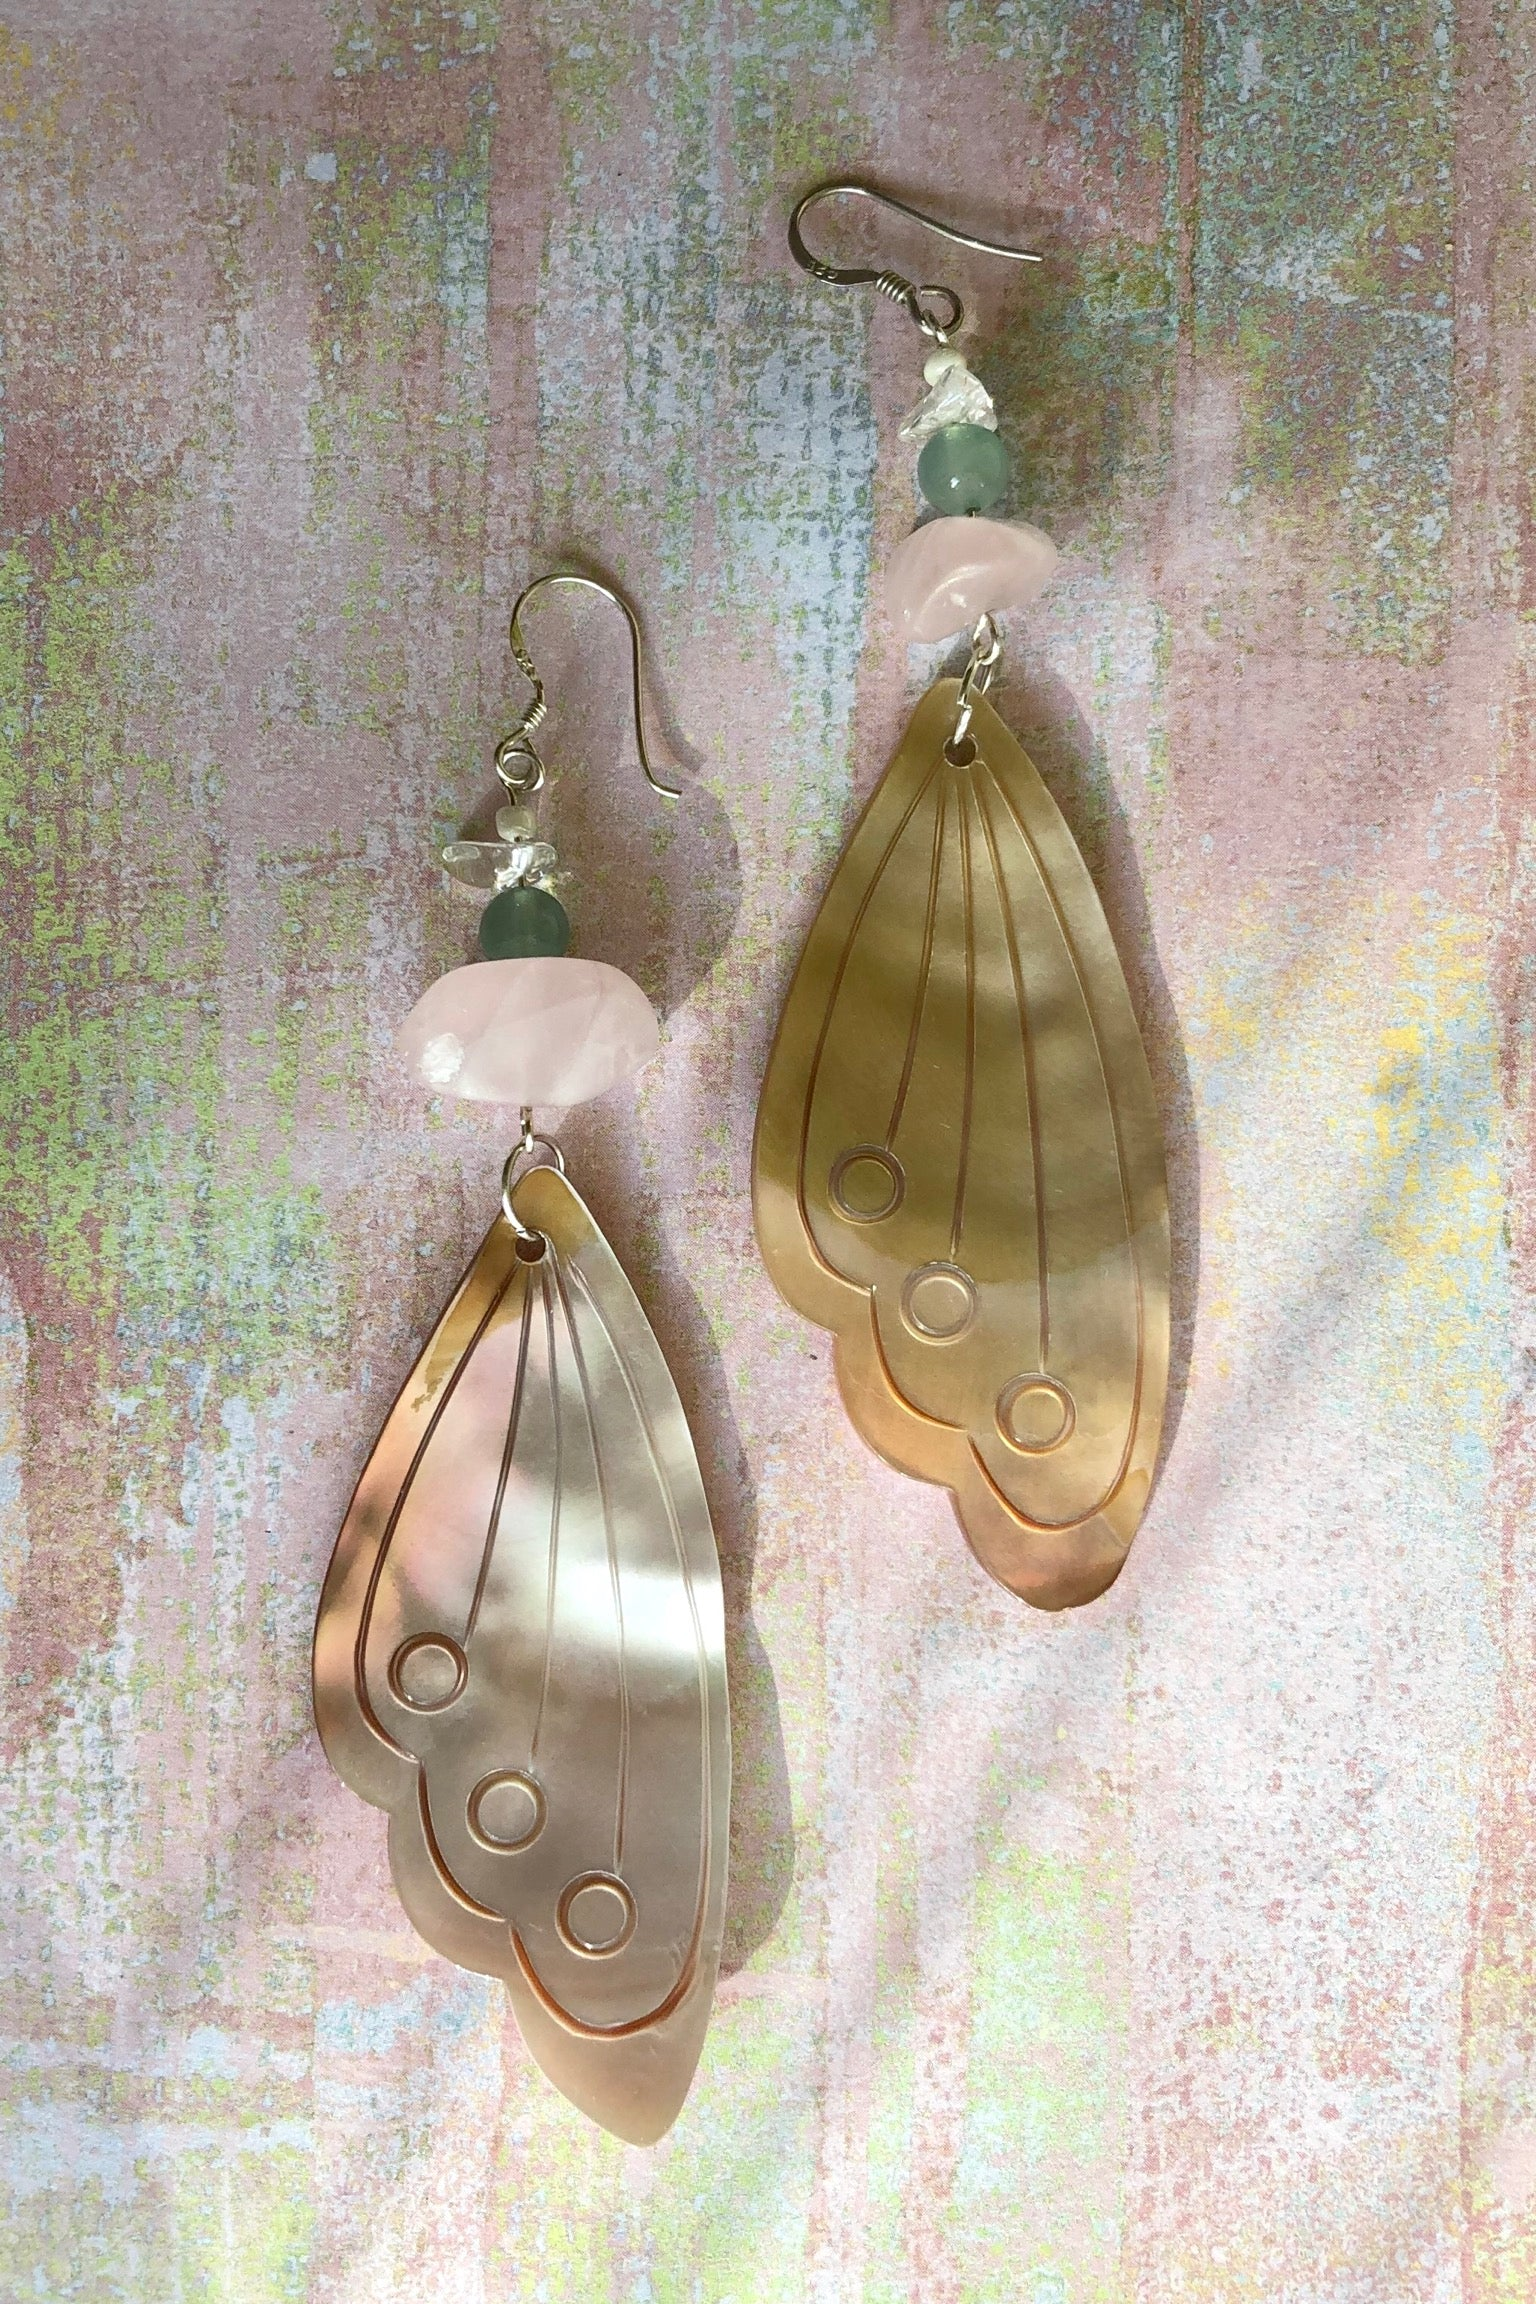 Serendipity Earrings Butterfly Wing Shell Pink are handmade exclusively for us. The gorgeous pale pink Mother of Pearl wing has been hand cut and polished. At the top there is a pebble of natural Rose Quartz, an Amazonite bead and a rock crystal bead.